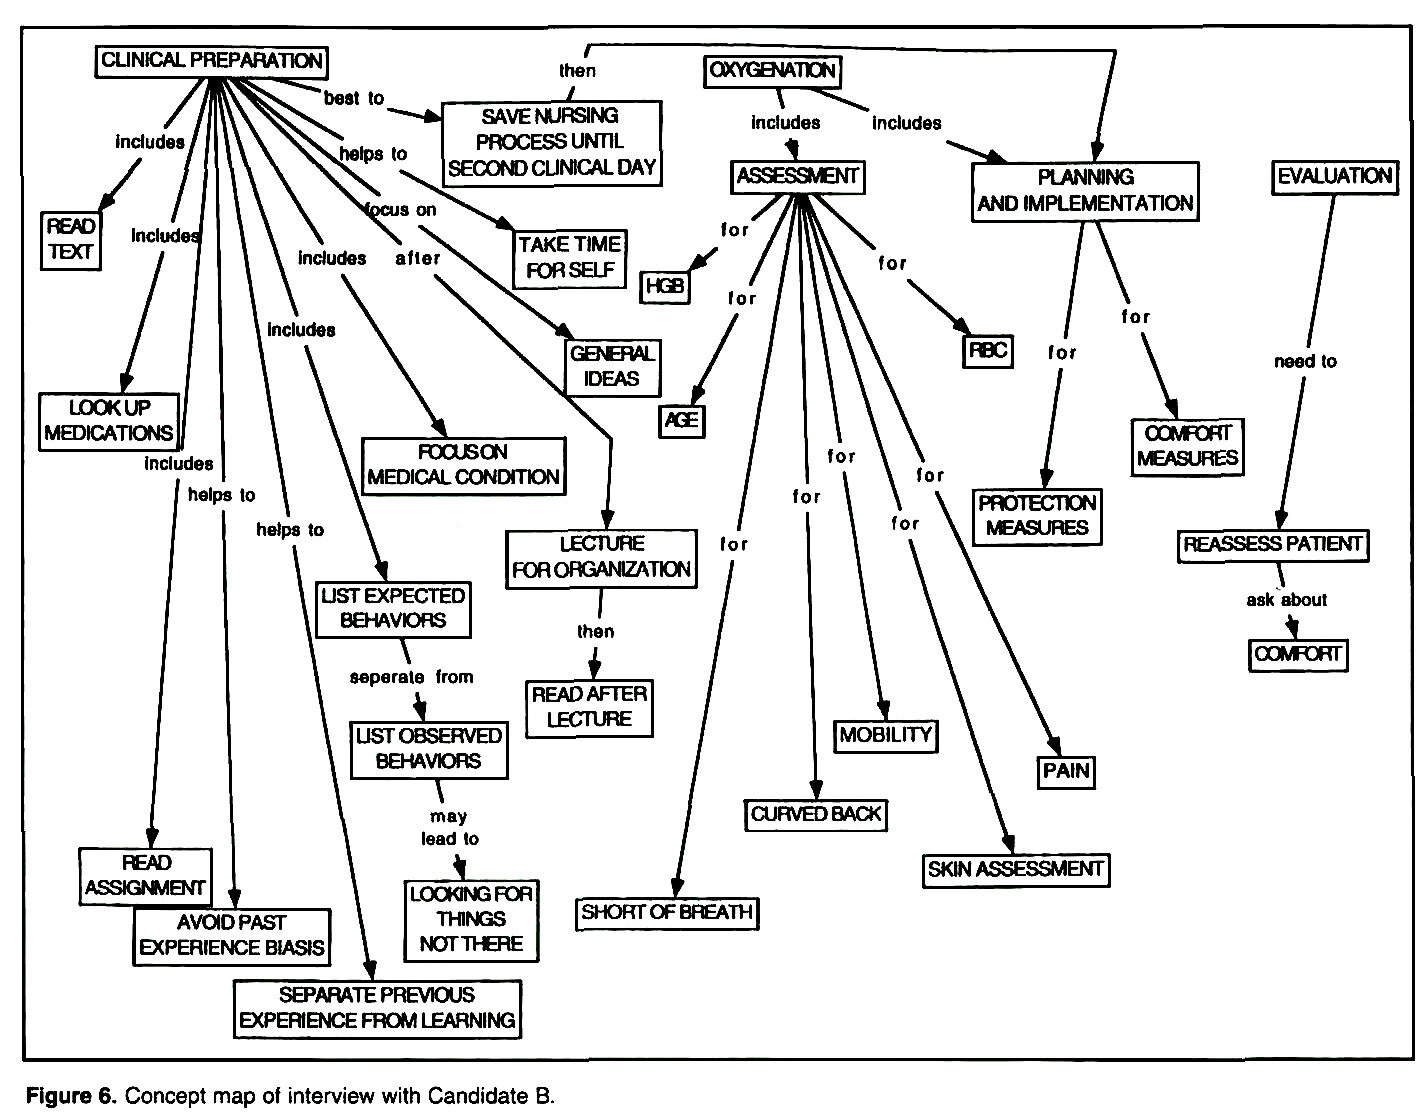 Concept Maps: Linking Nursing Theory to Clinical Nursing